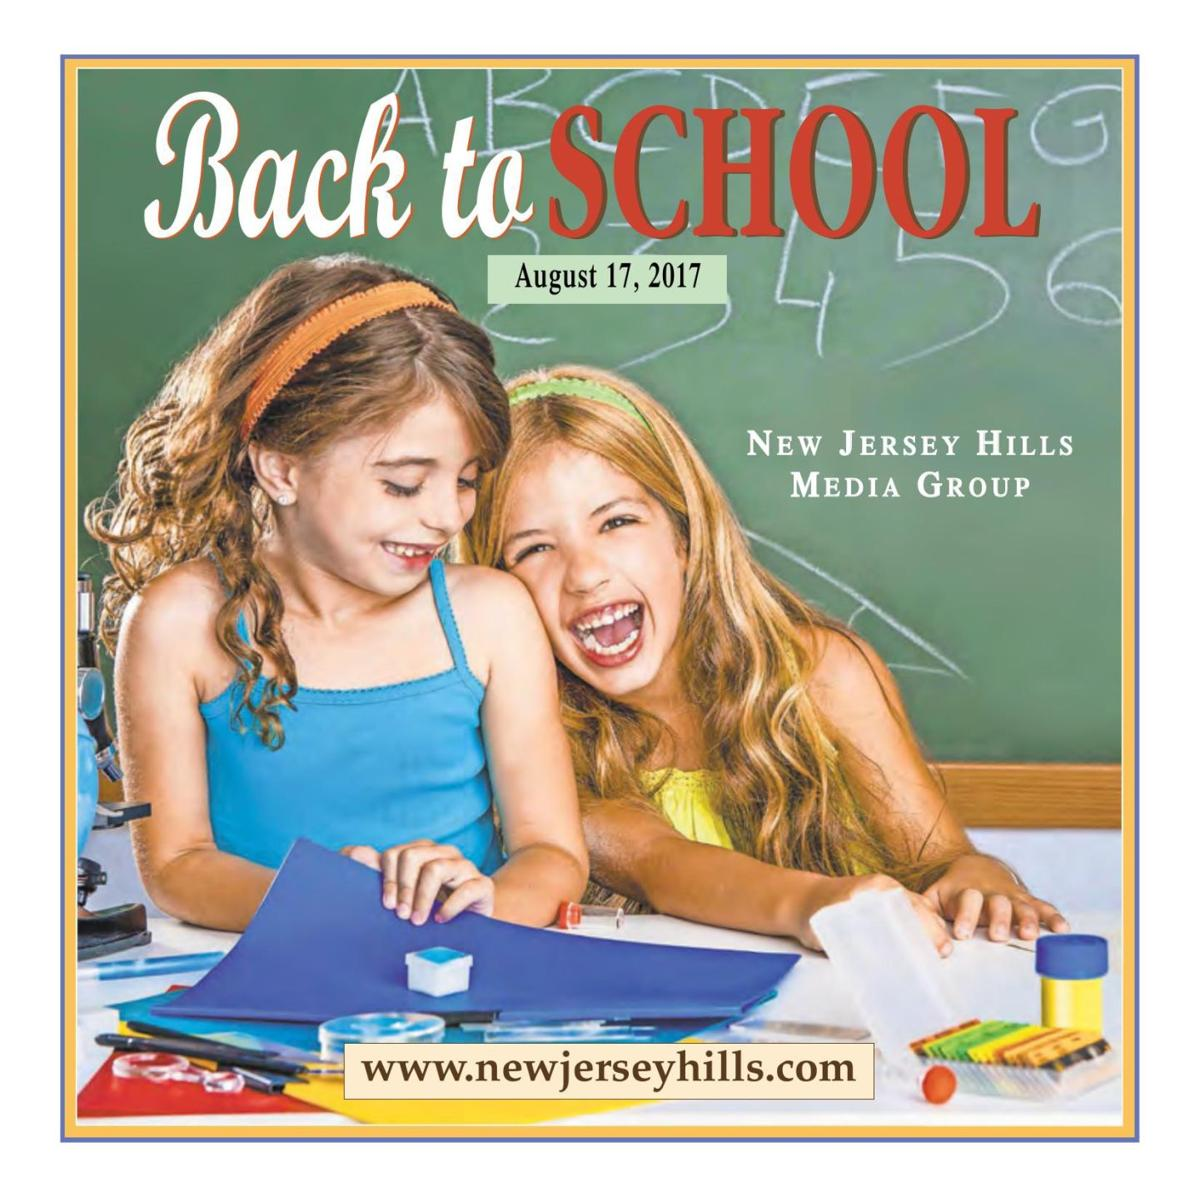 Back To School - August 17,2017